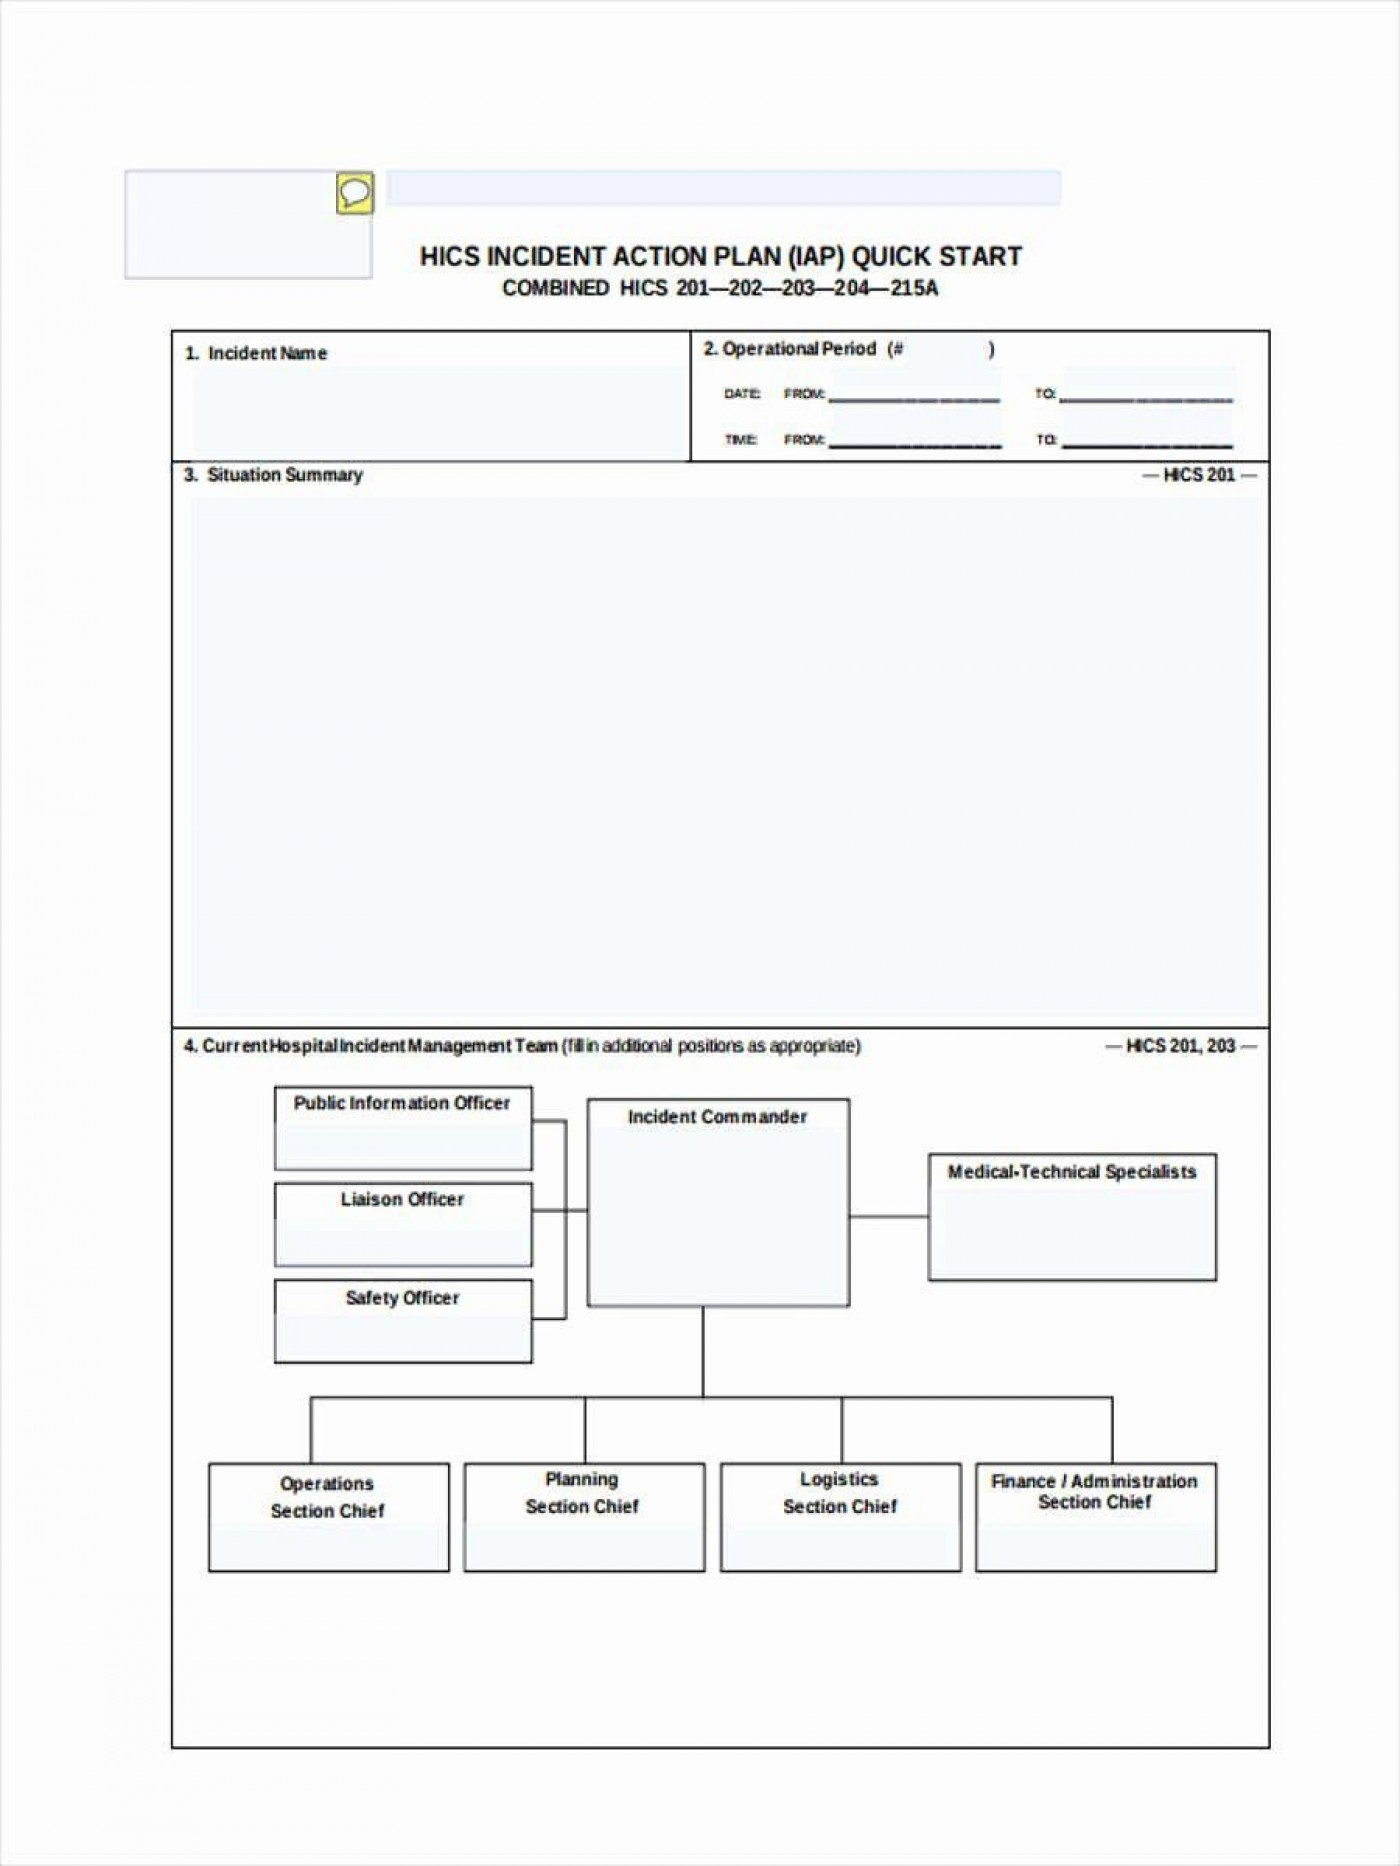 000 Shocking Incident Action Plan Template High Definition  Sample Philippine Fire Example Form 2011400